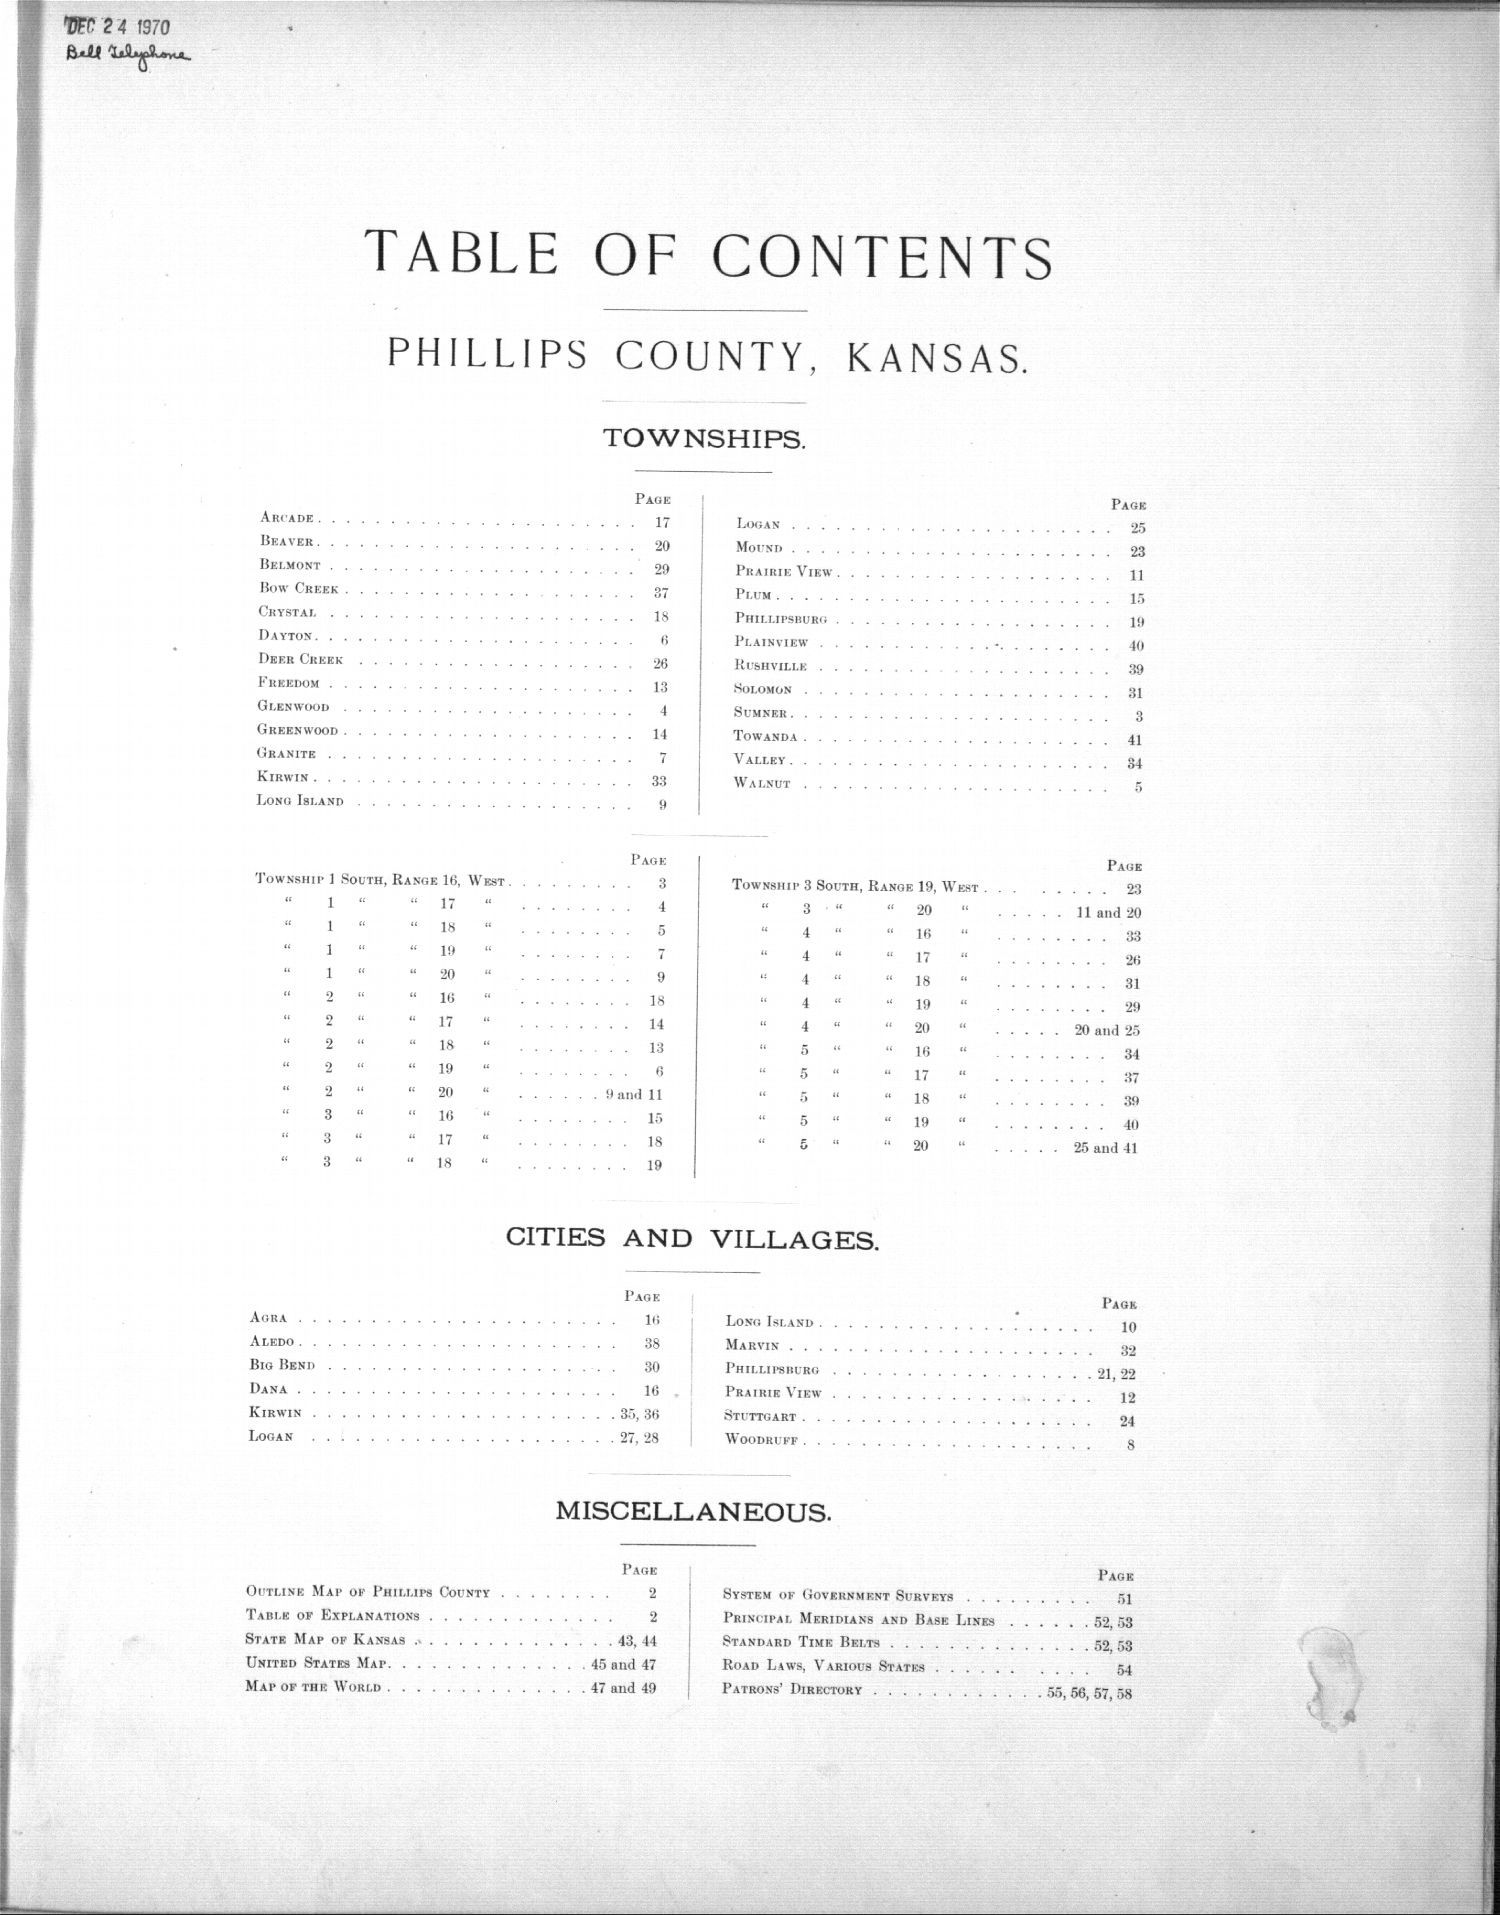 Plat book, Phillips County, Kansas - Table of Contents